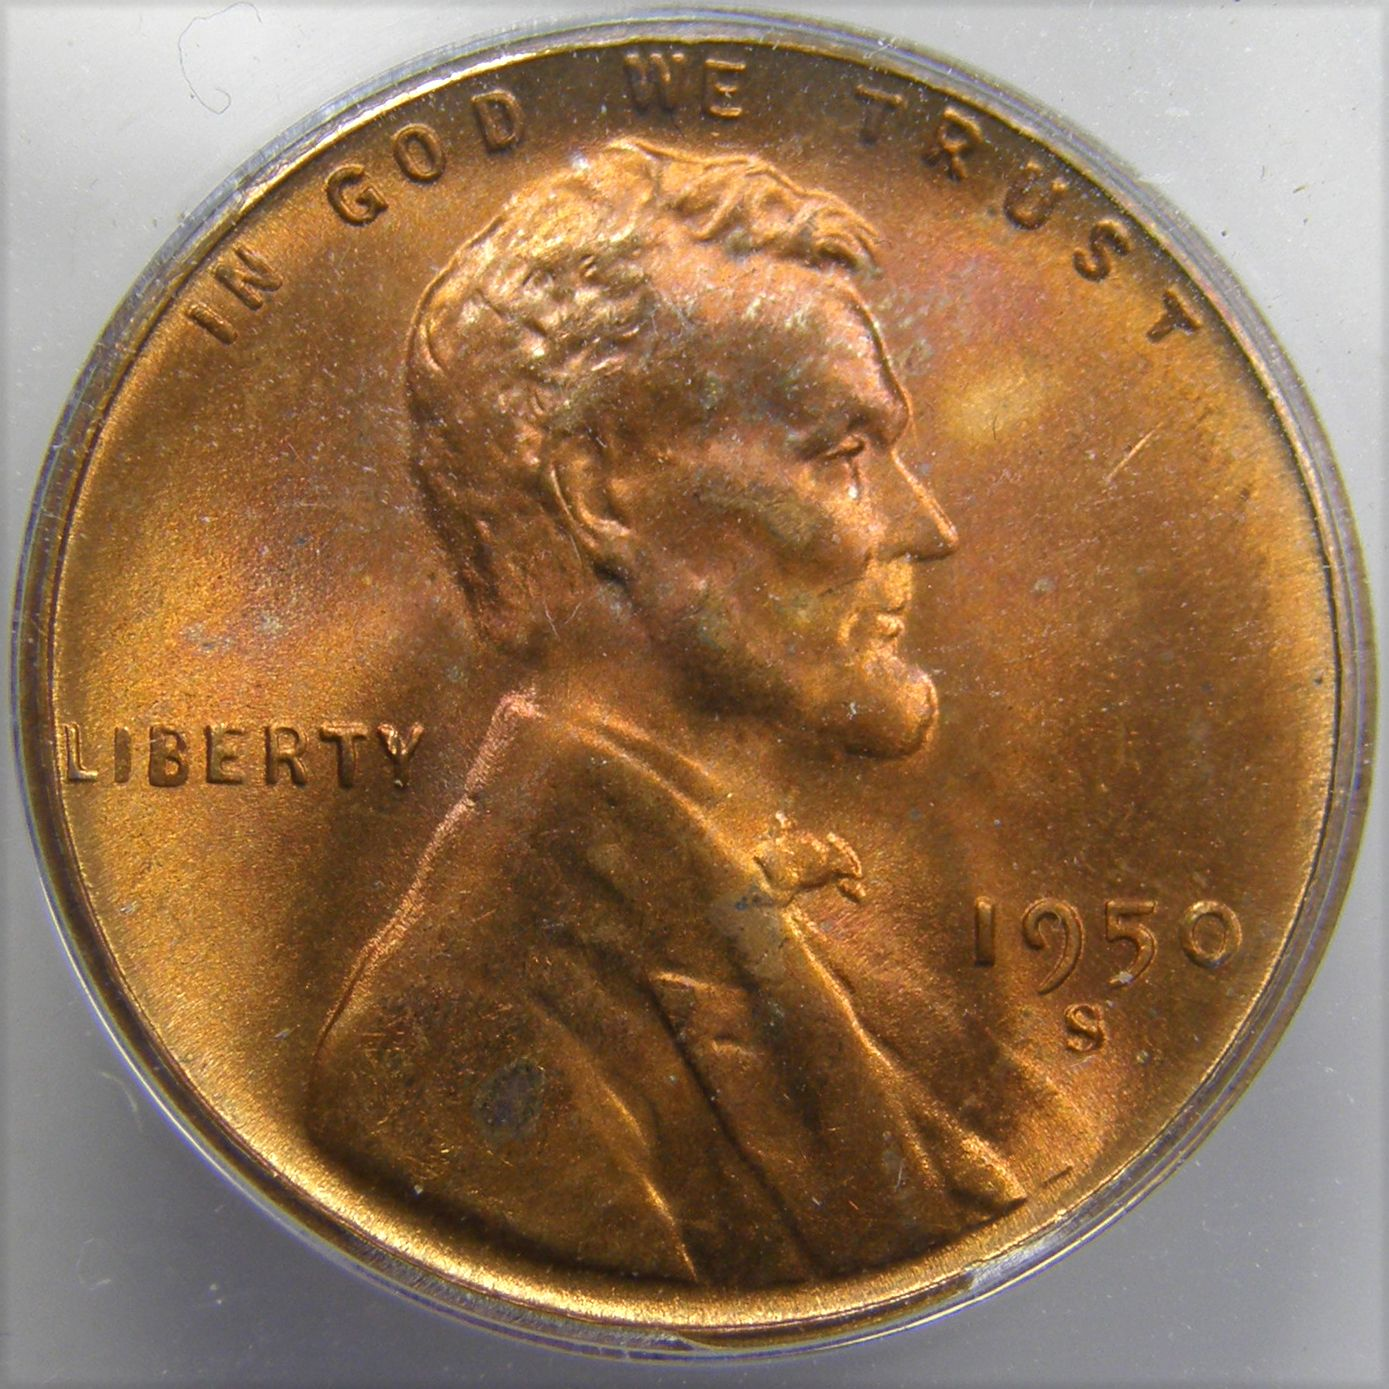 1950 S Lincoln Wheat Cent Bv 30 00 For Sale Buy Now Online Item 48421